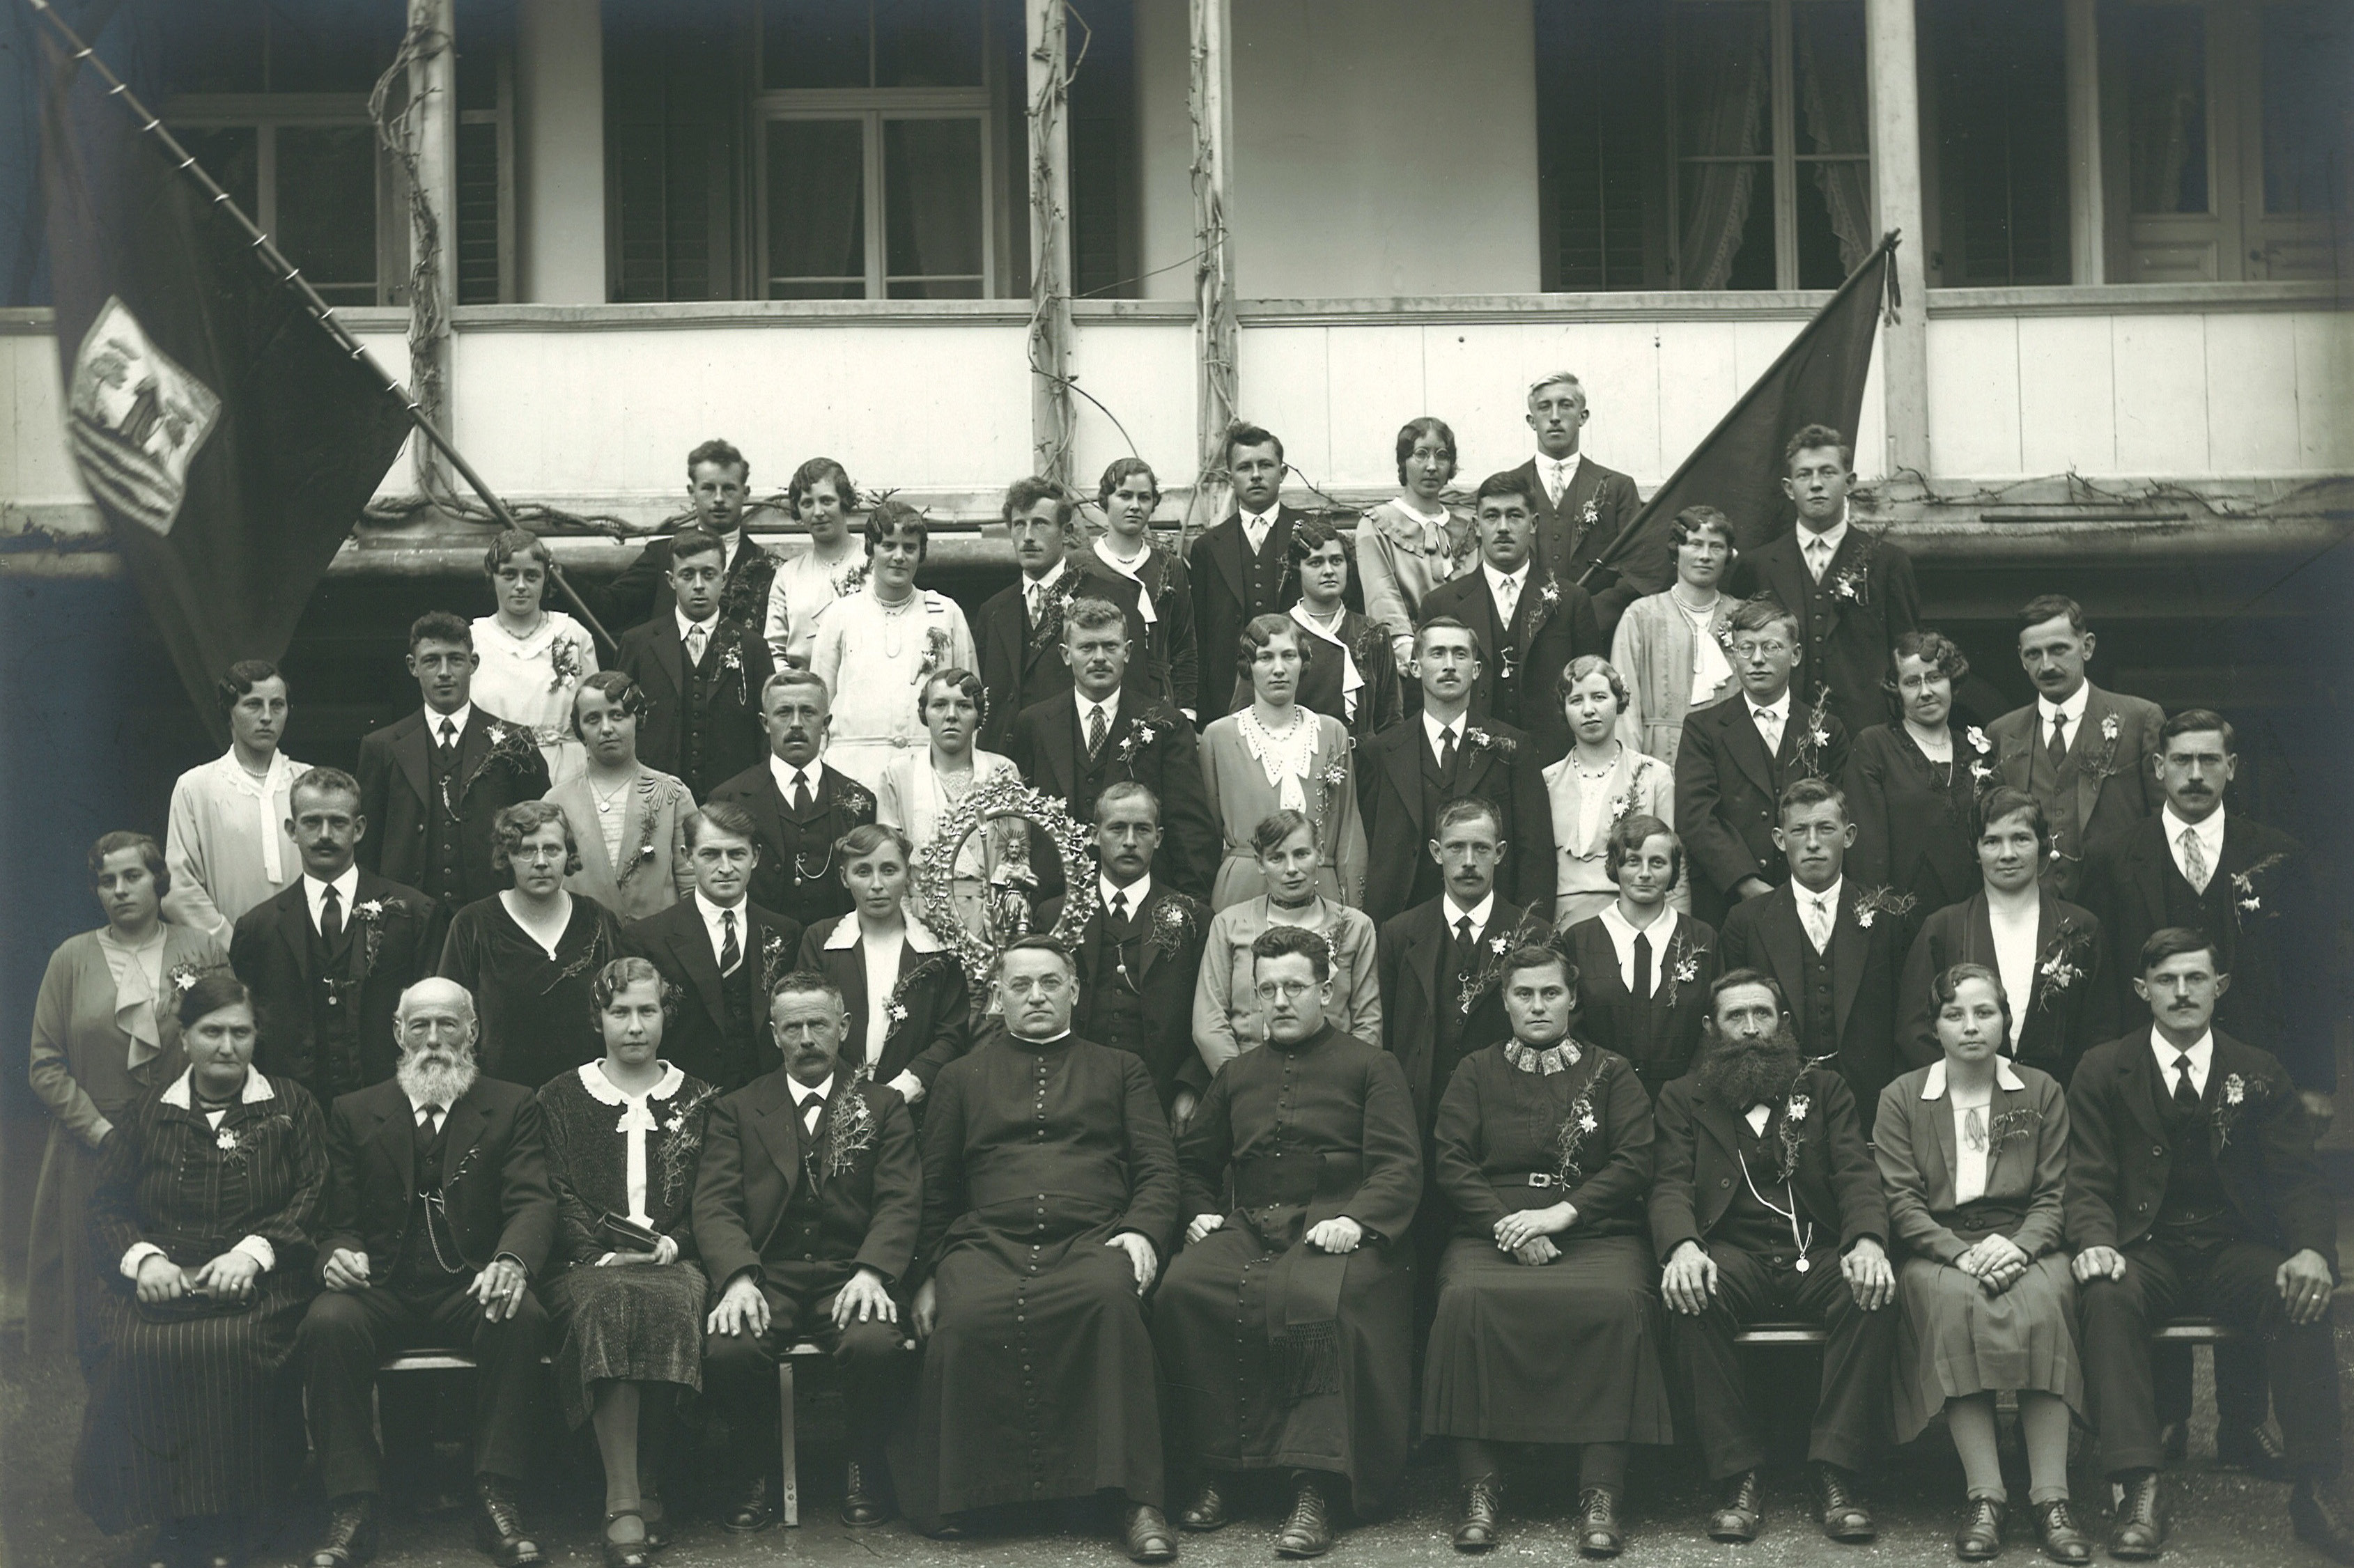 Fair officials of the Wolfschiessen association with their wives and clergymen with the figurine of St Wendelin just behind them, 1931 © Staatsarchiv NW